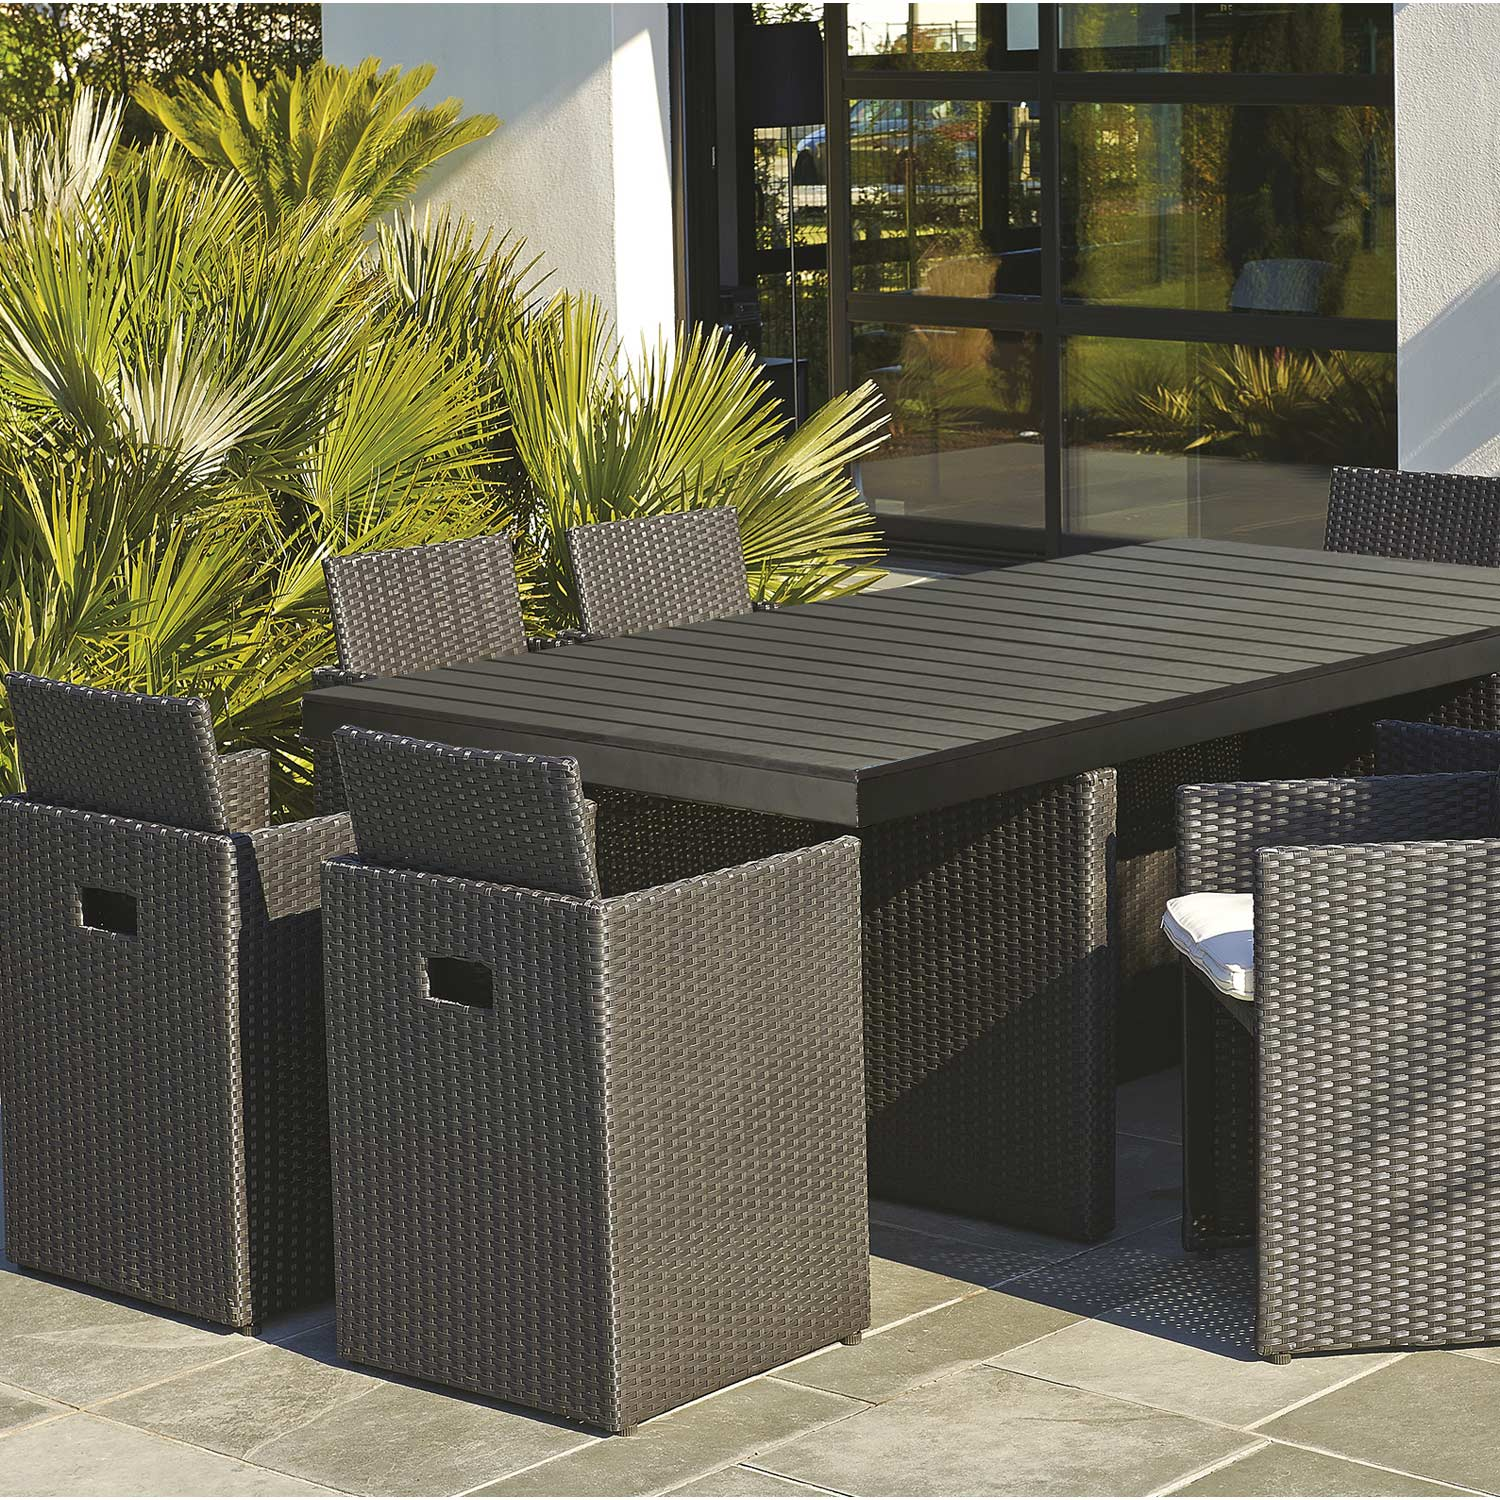 Salon de jardin encastrable r sine tress e noir 1 table 8 fauteuils leroy merlin - Leroy merlin salon jardin resine toulon ...